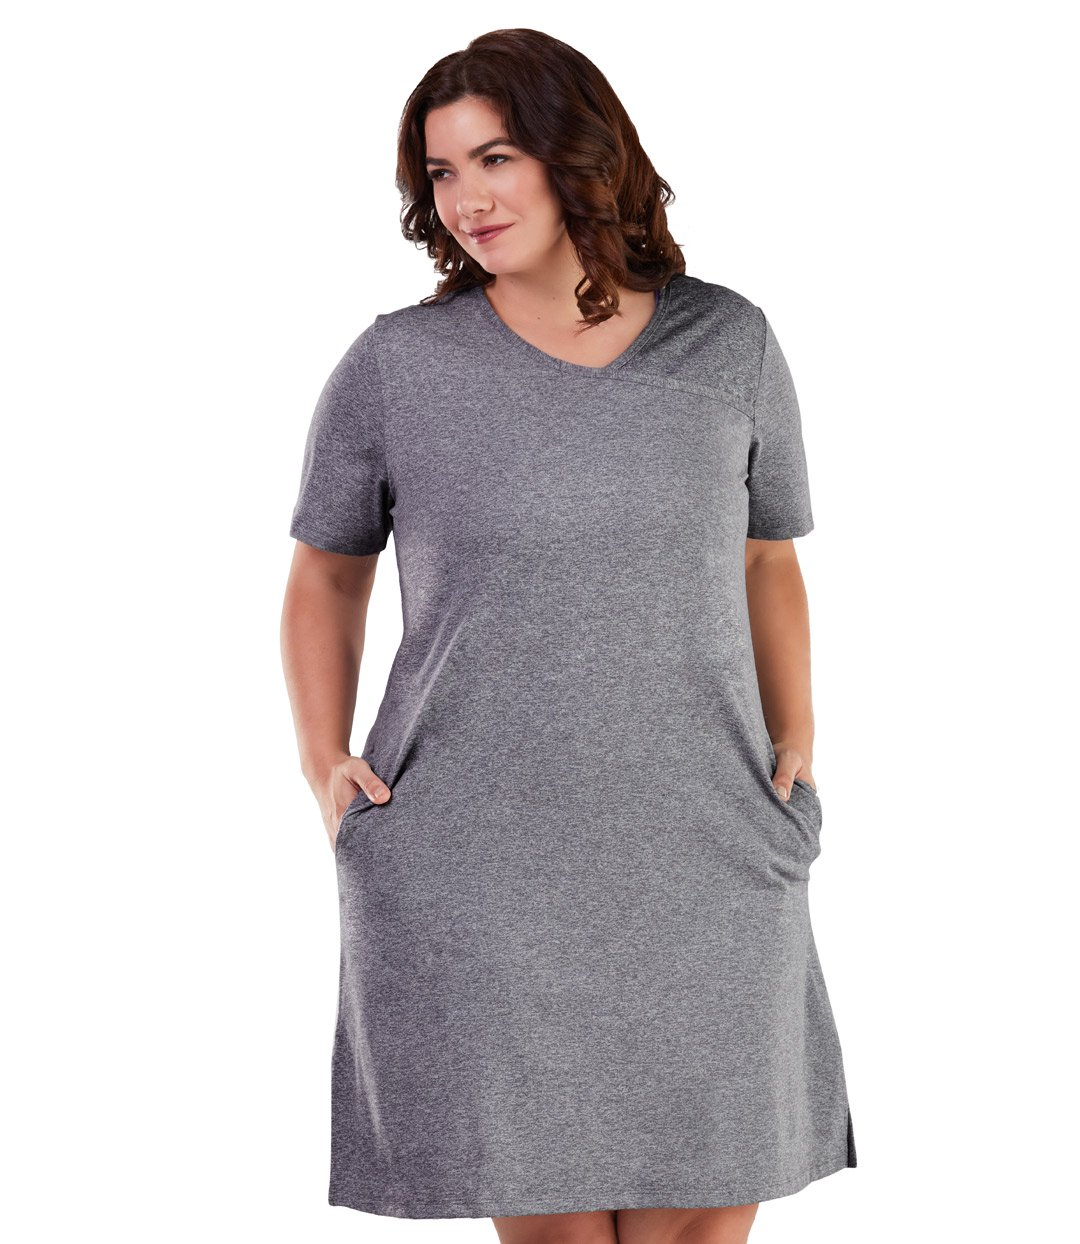 JunoActive gray short sleeved trail dress